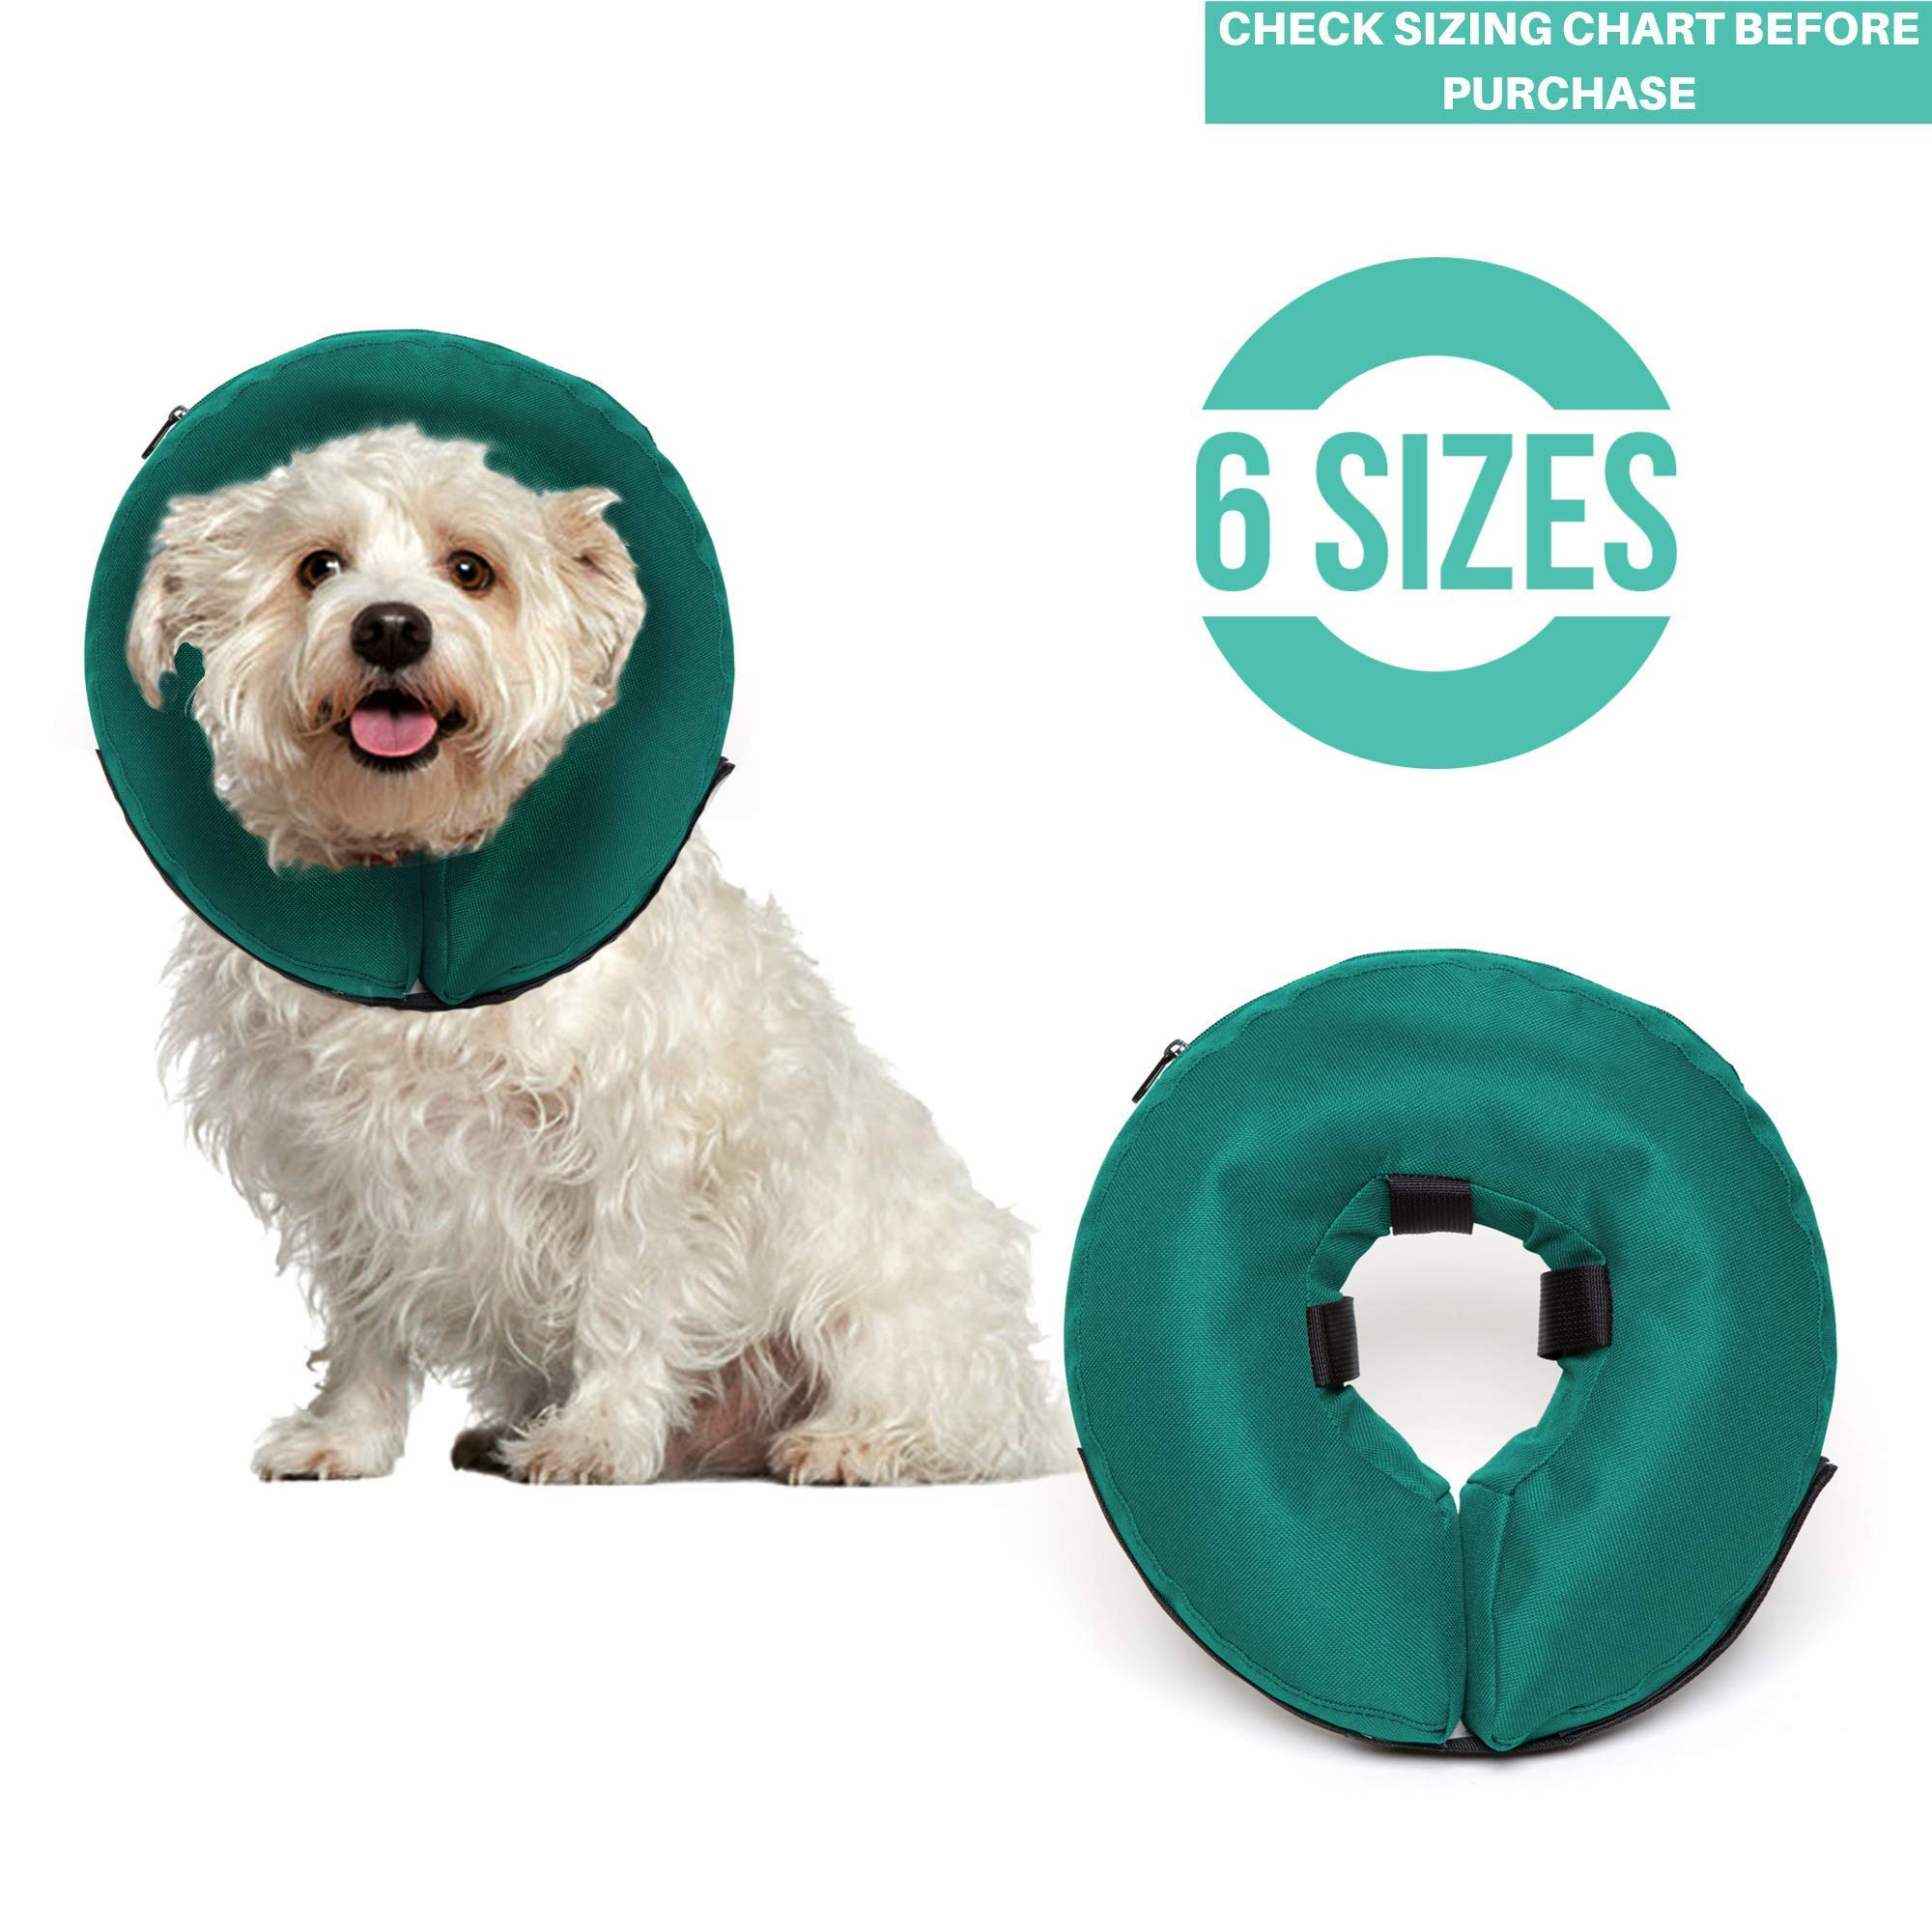 ProCollar Protective Inflatable Recovery Collar for Dogs and Cats - Soft Pet Cone Does Not Block Vision E-Collar - Designed to Prevent Pets from Touching Stitches, Wounds and Rashes (Small) by ProCollar